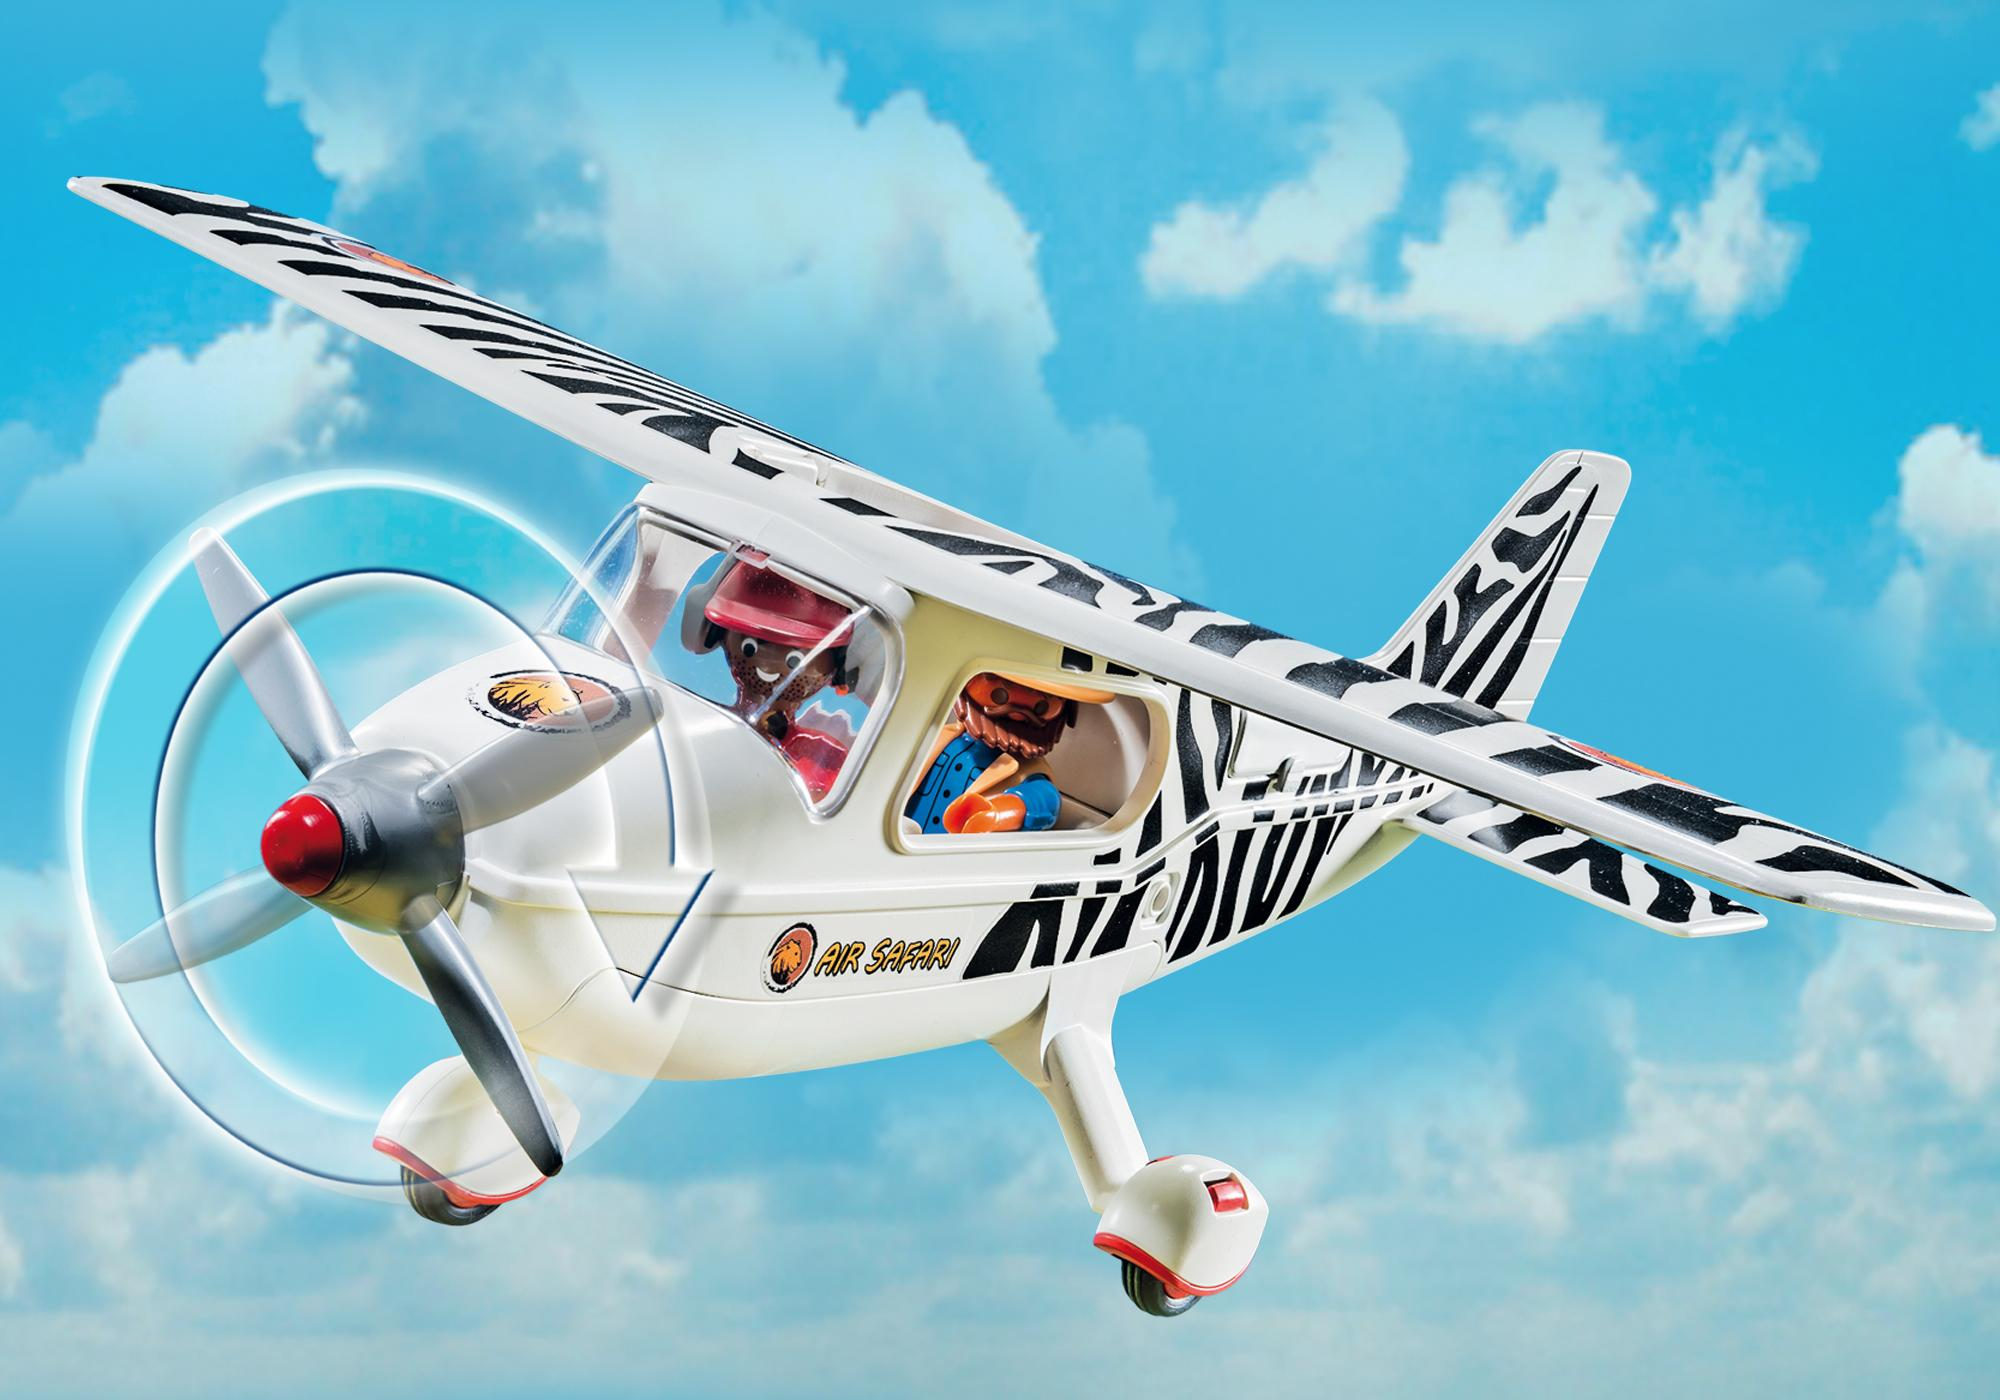 http://media.playmobil.com/i/playmobil/6938_product_extra2/Safari-Flugzeug